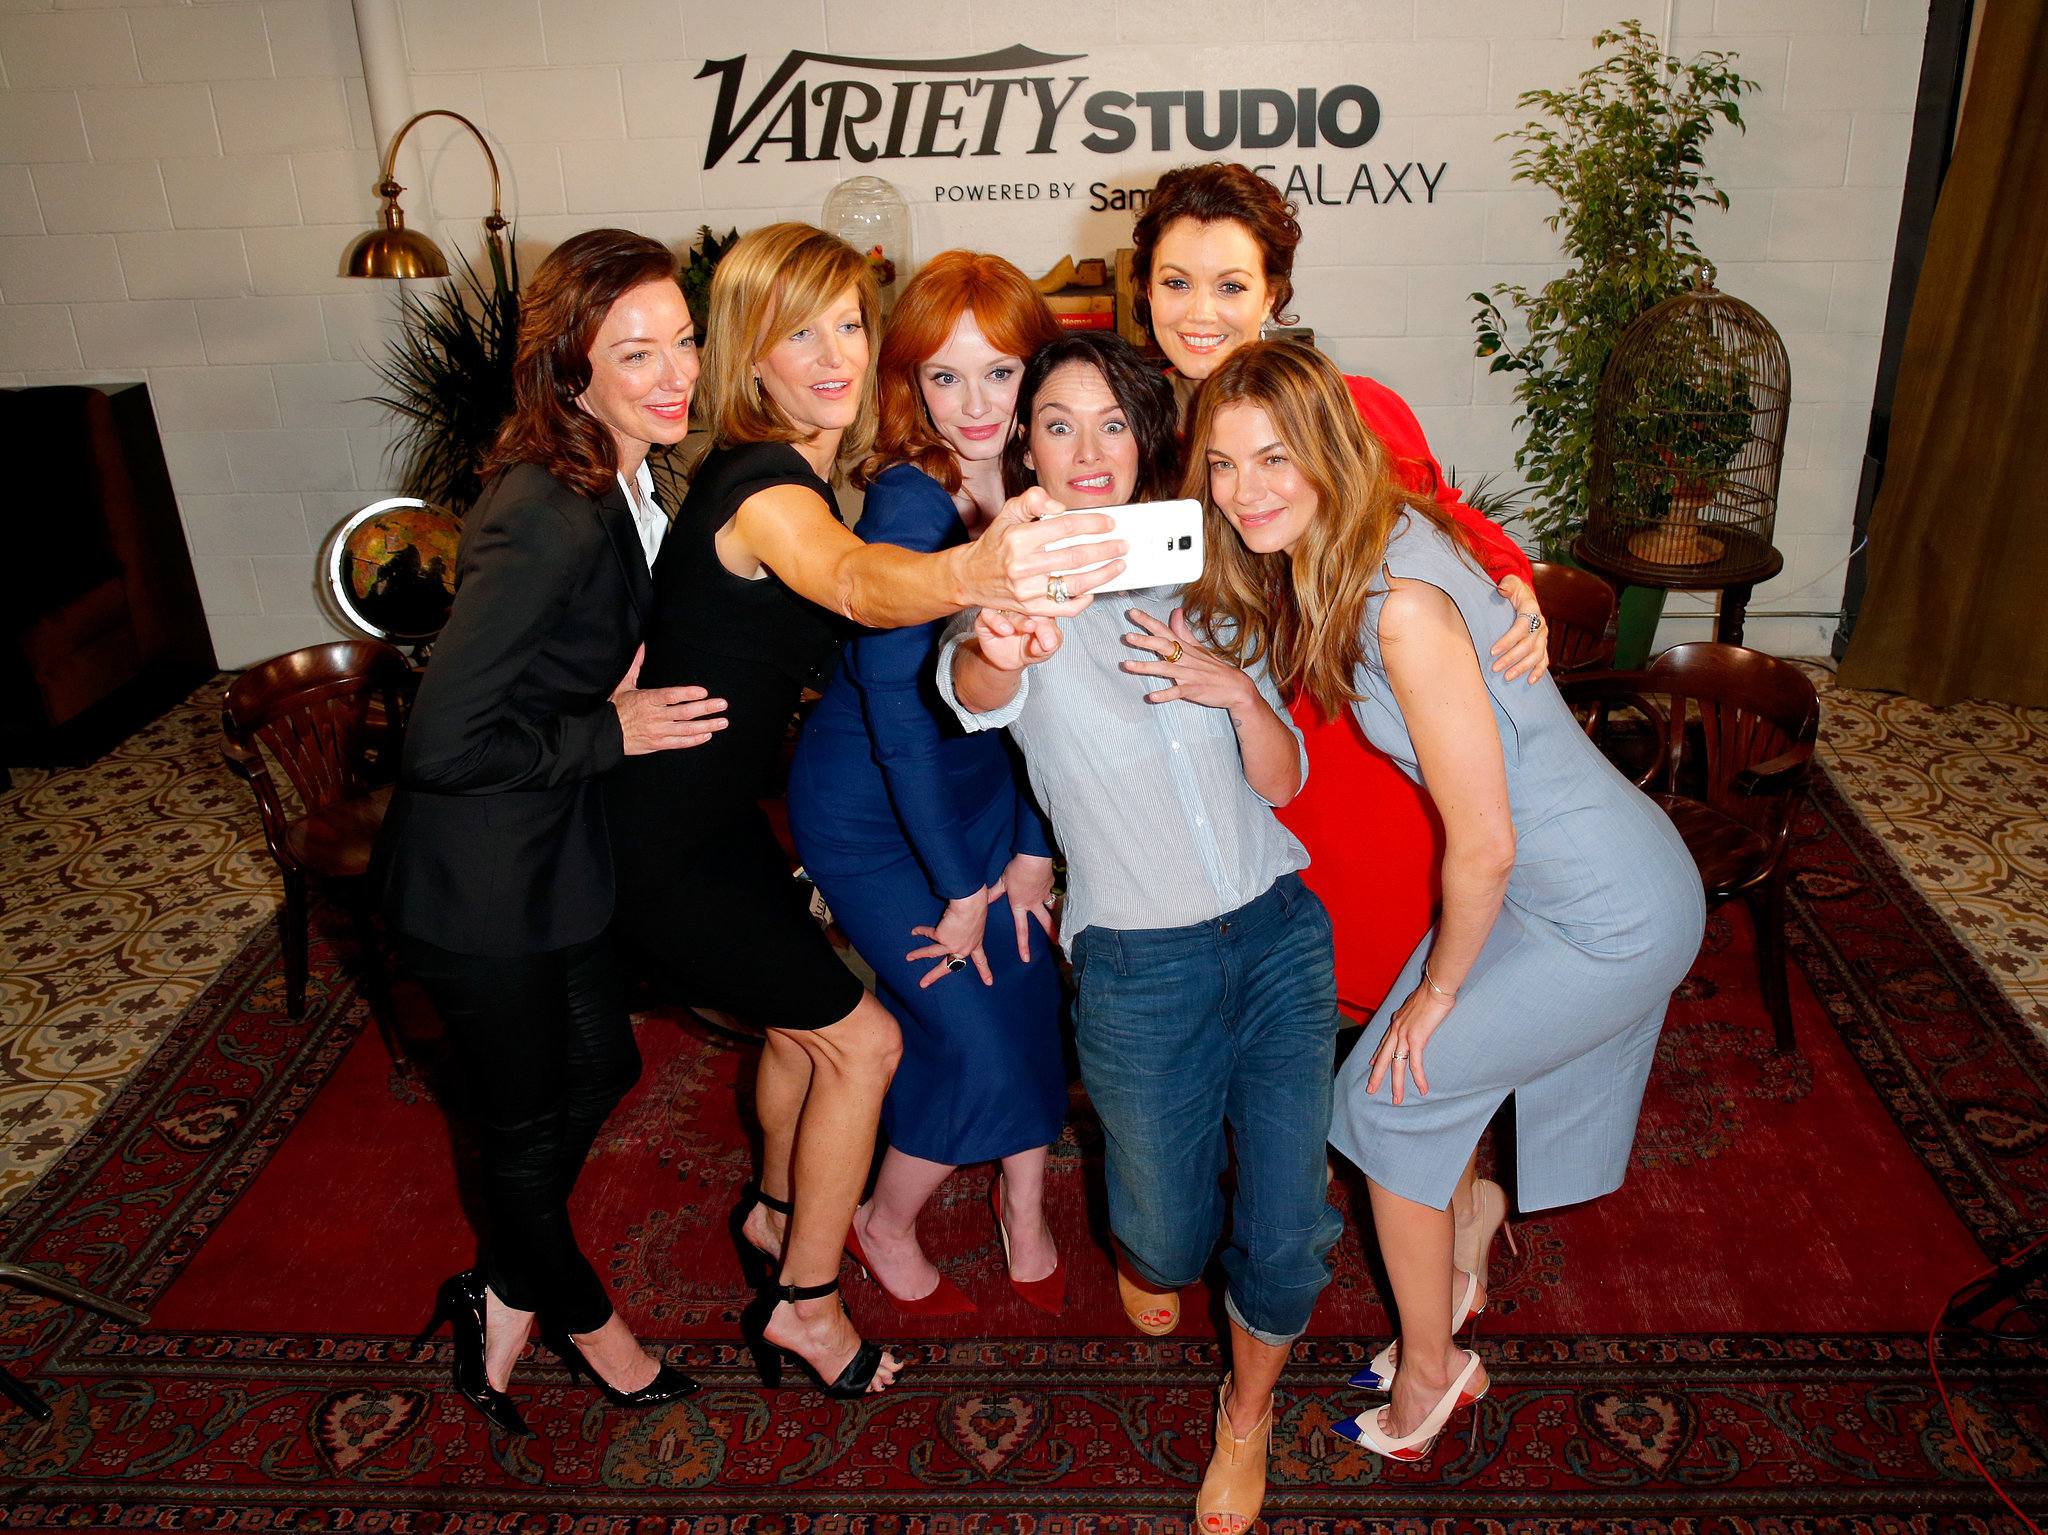 In May 2014, Molly Parker, Anna Gunn, Christina Hendricks, Lena Headey, Bellamy Young, and Michelle Monaghan took an epic photo in LA.